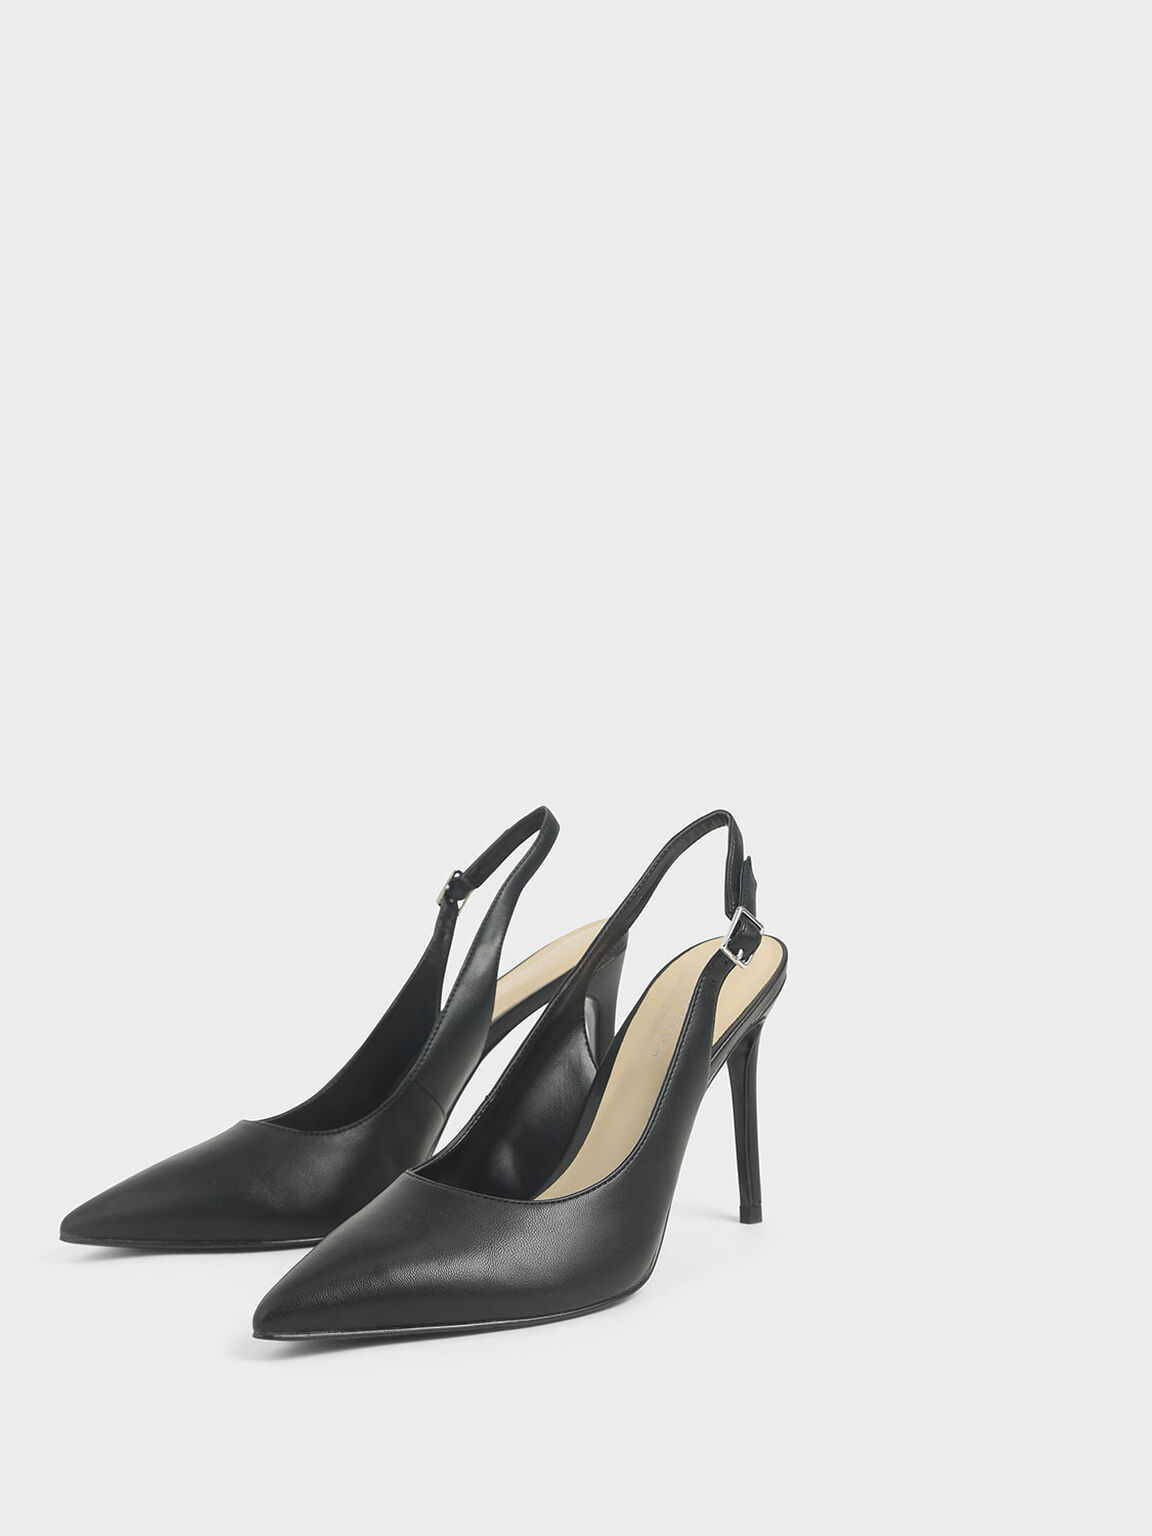 Stiletto Slingback Pumps, Black, hi-res